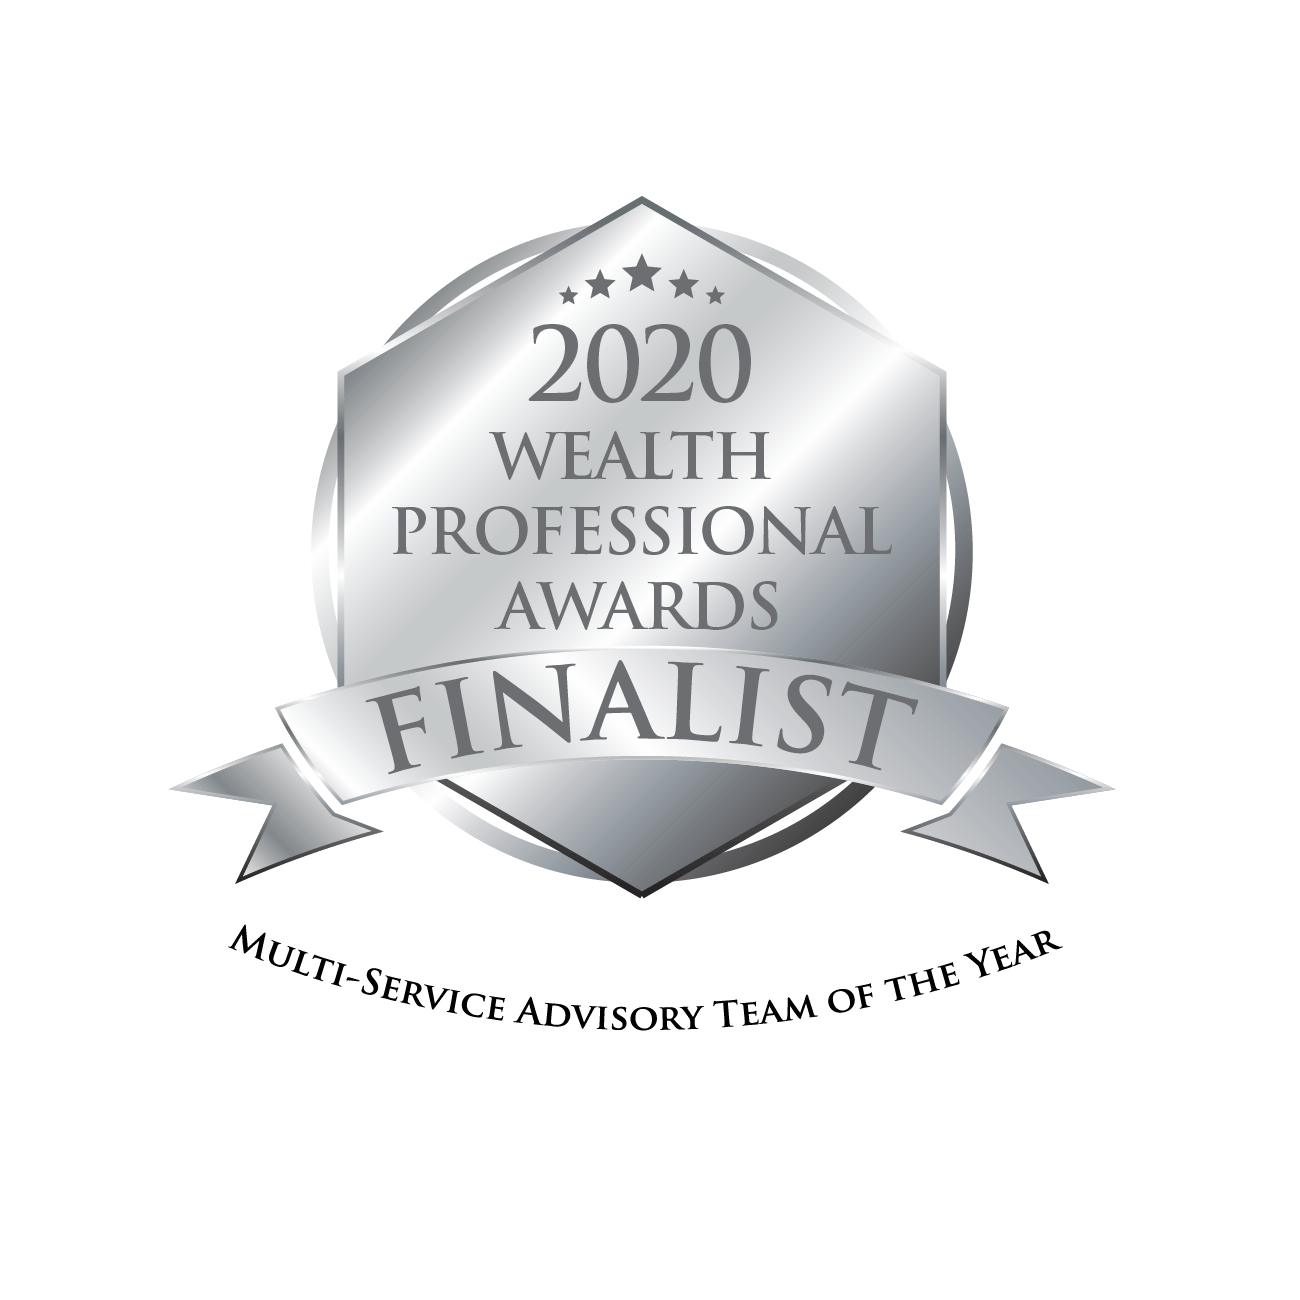 Allen Private Wealth: Multi-Service Advisory Team of the Year